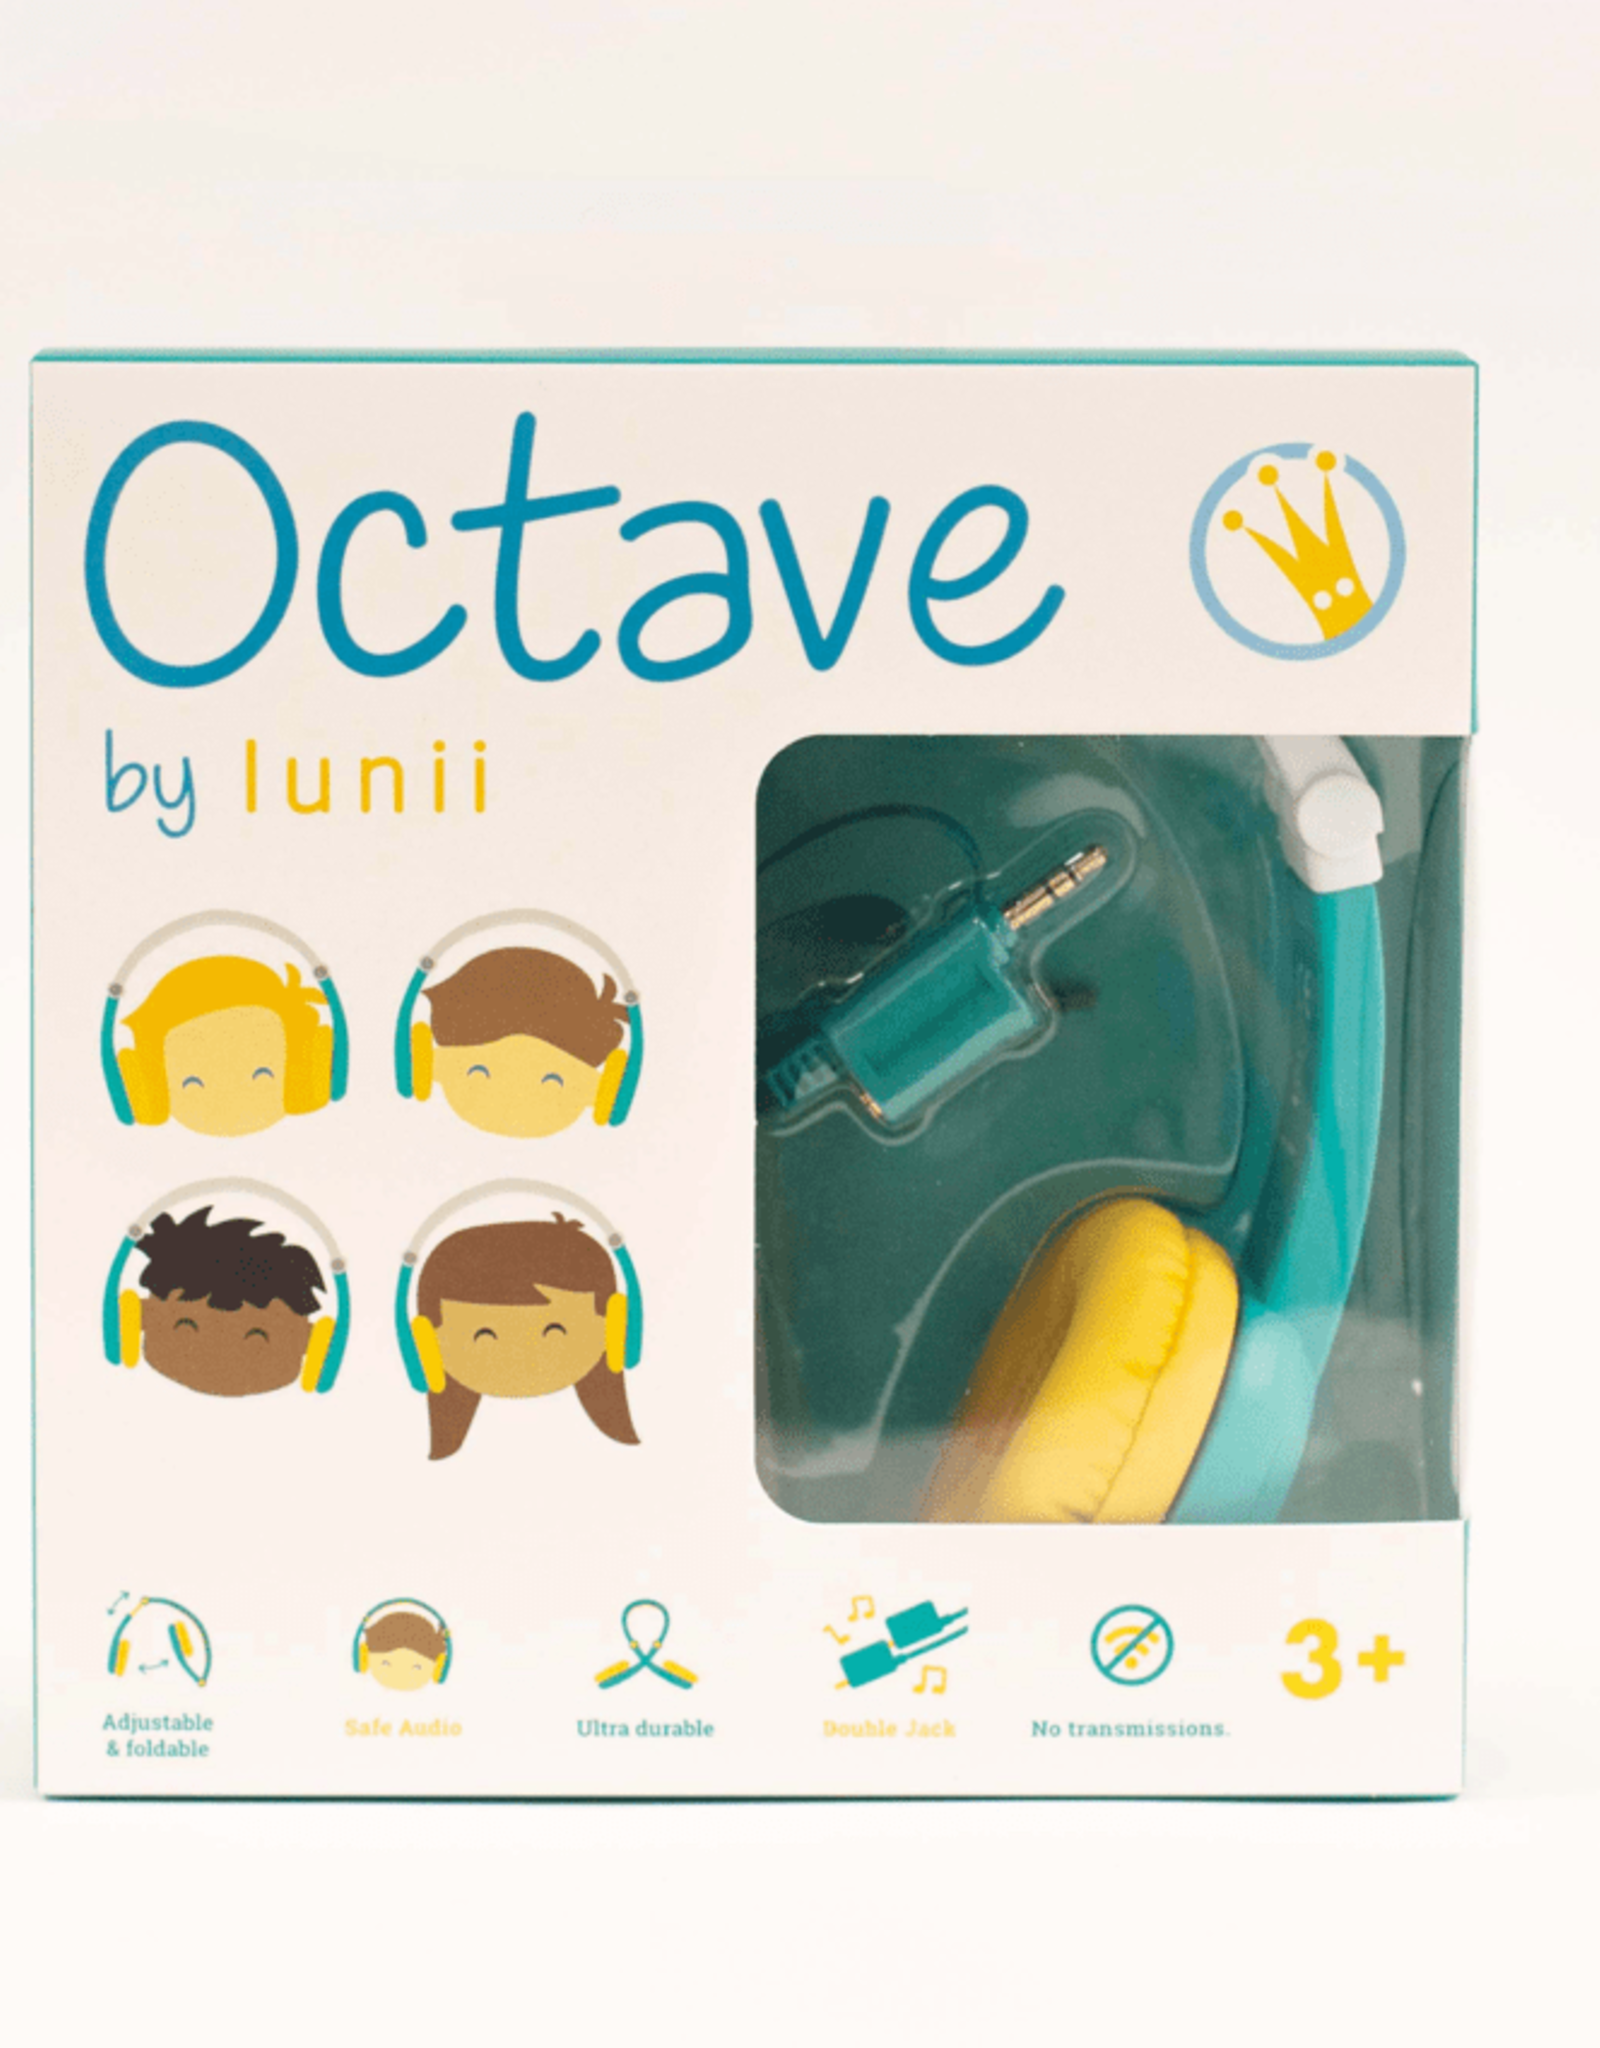 Lunii Octave, the audio headset